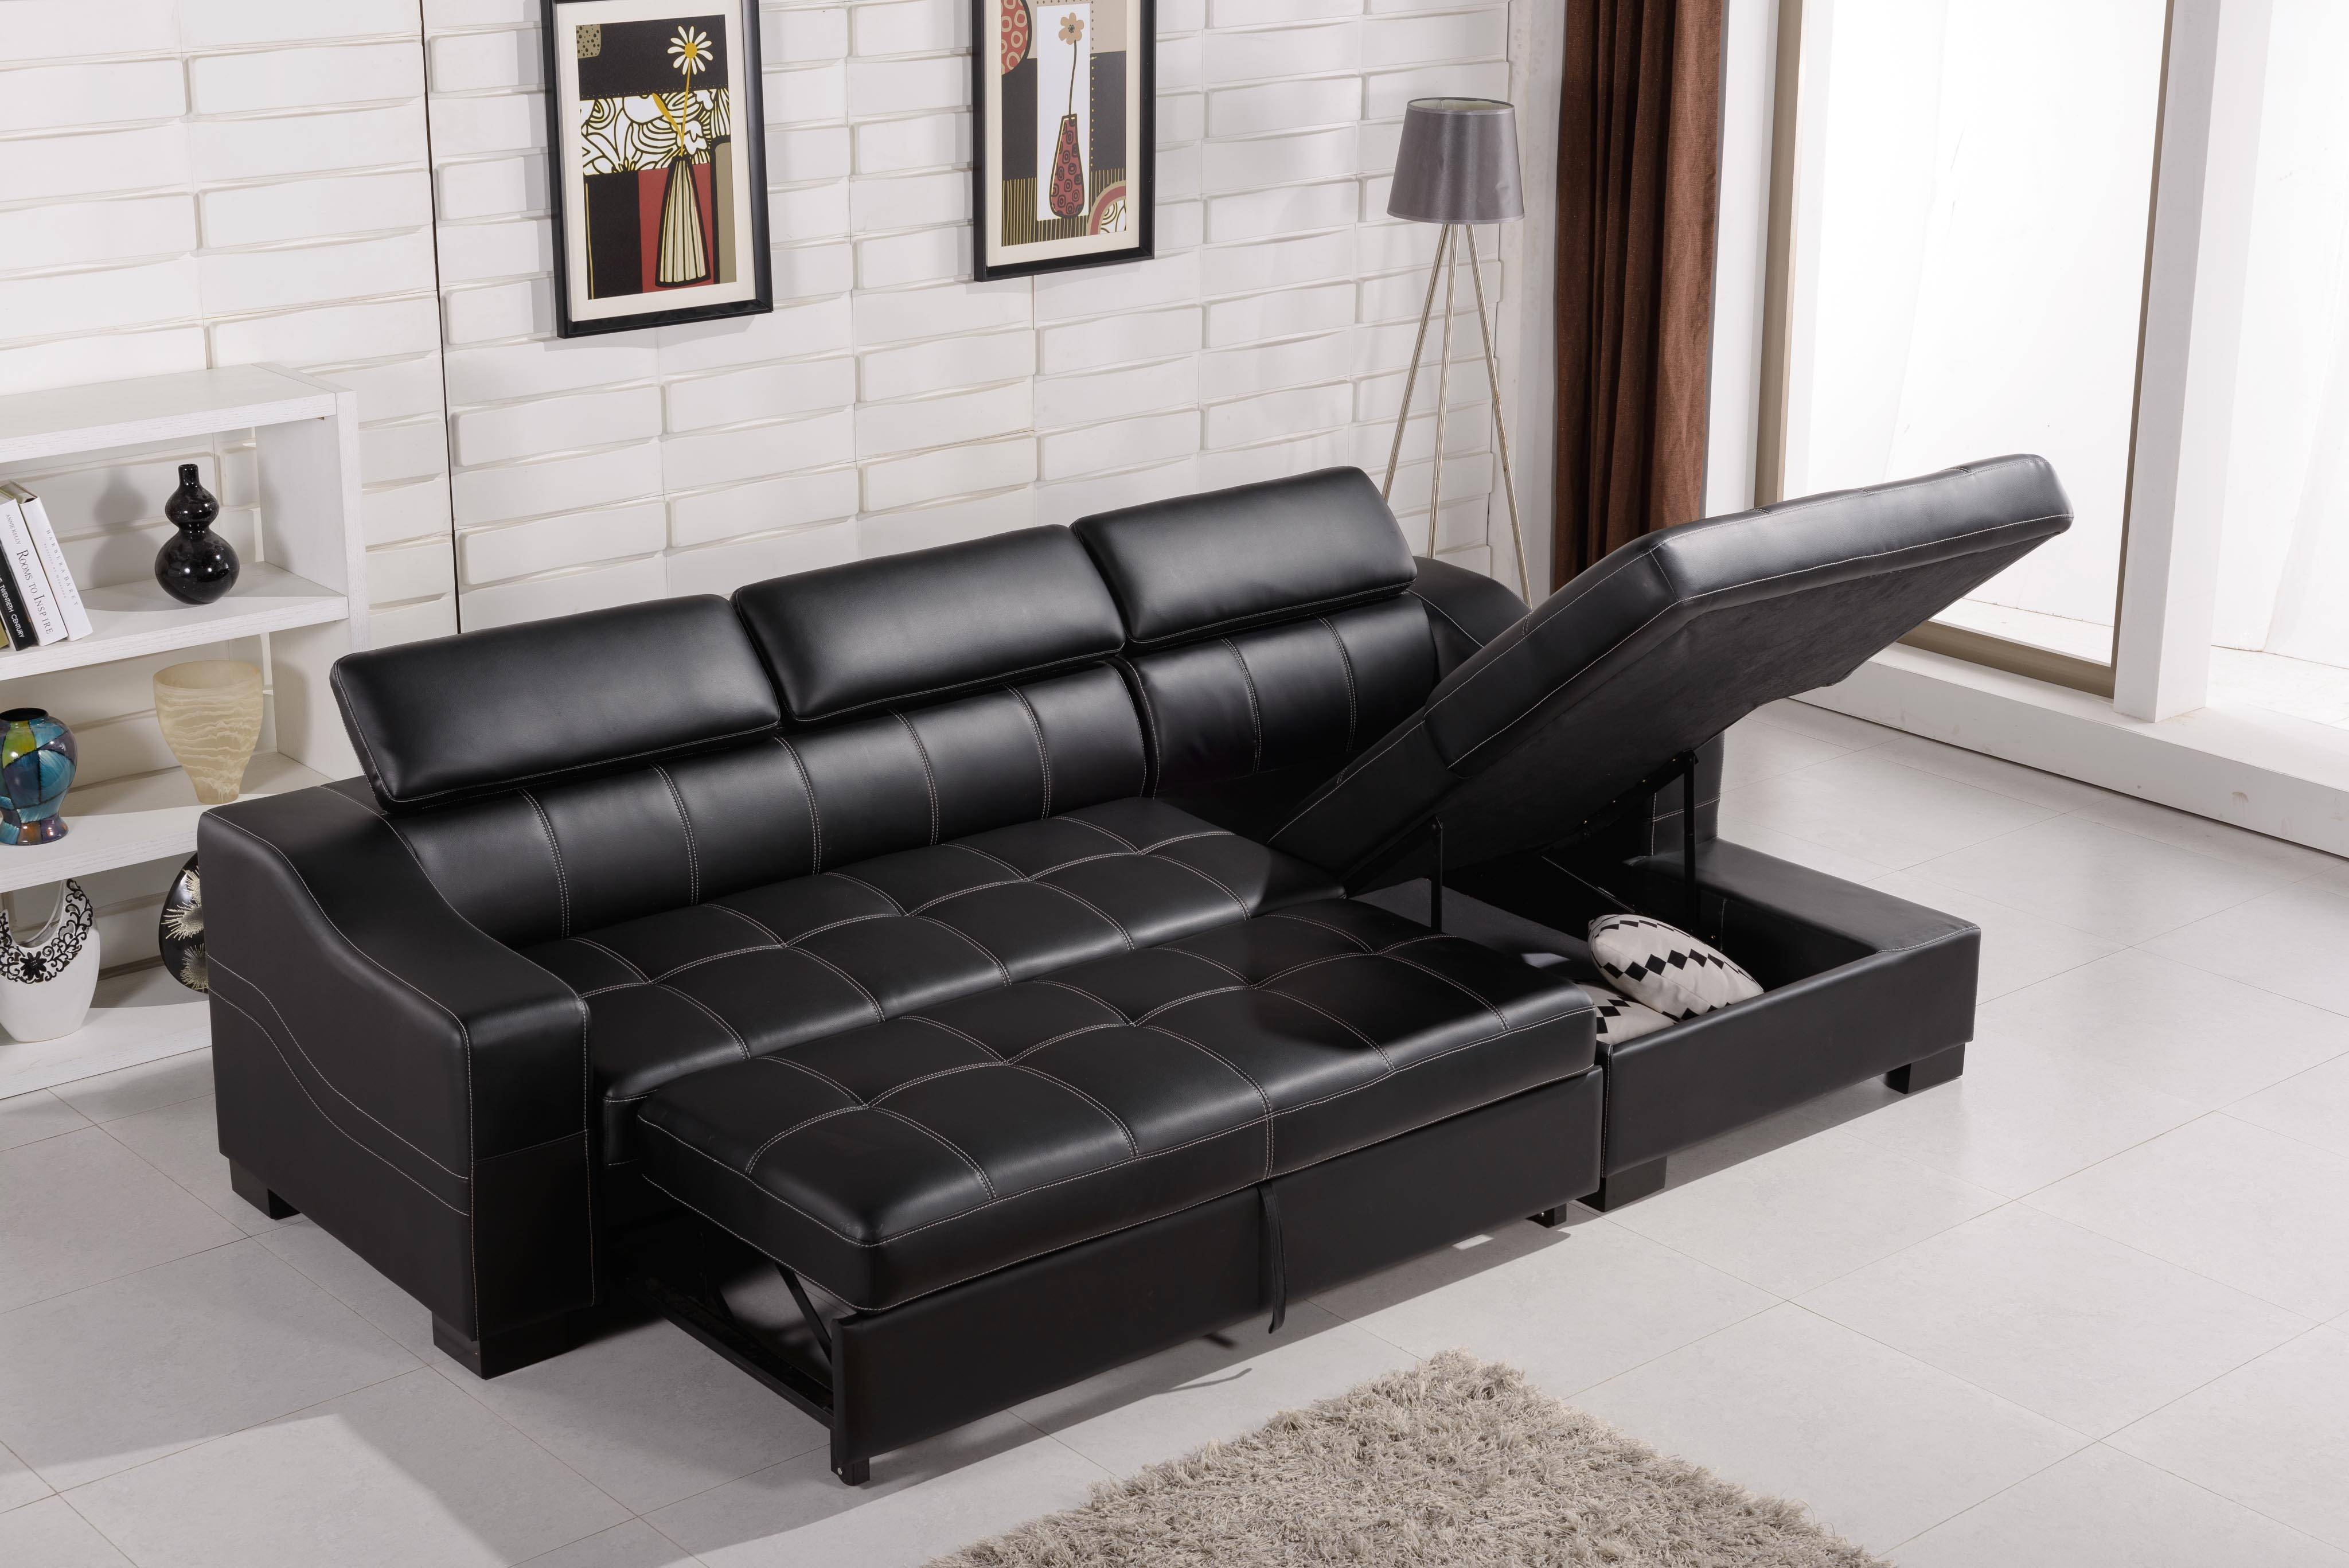 Sleeper Sectional Sofa With Storage | Tehranmix Decoration pertaining to Sectional Sofa With Storage (Image 21 of 25)